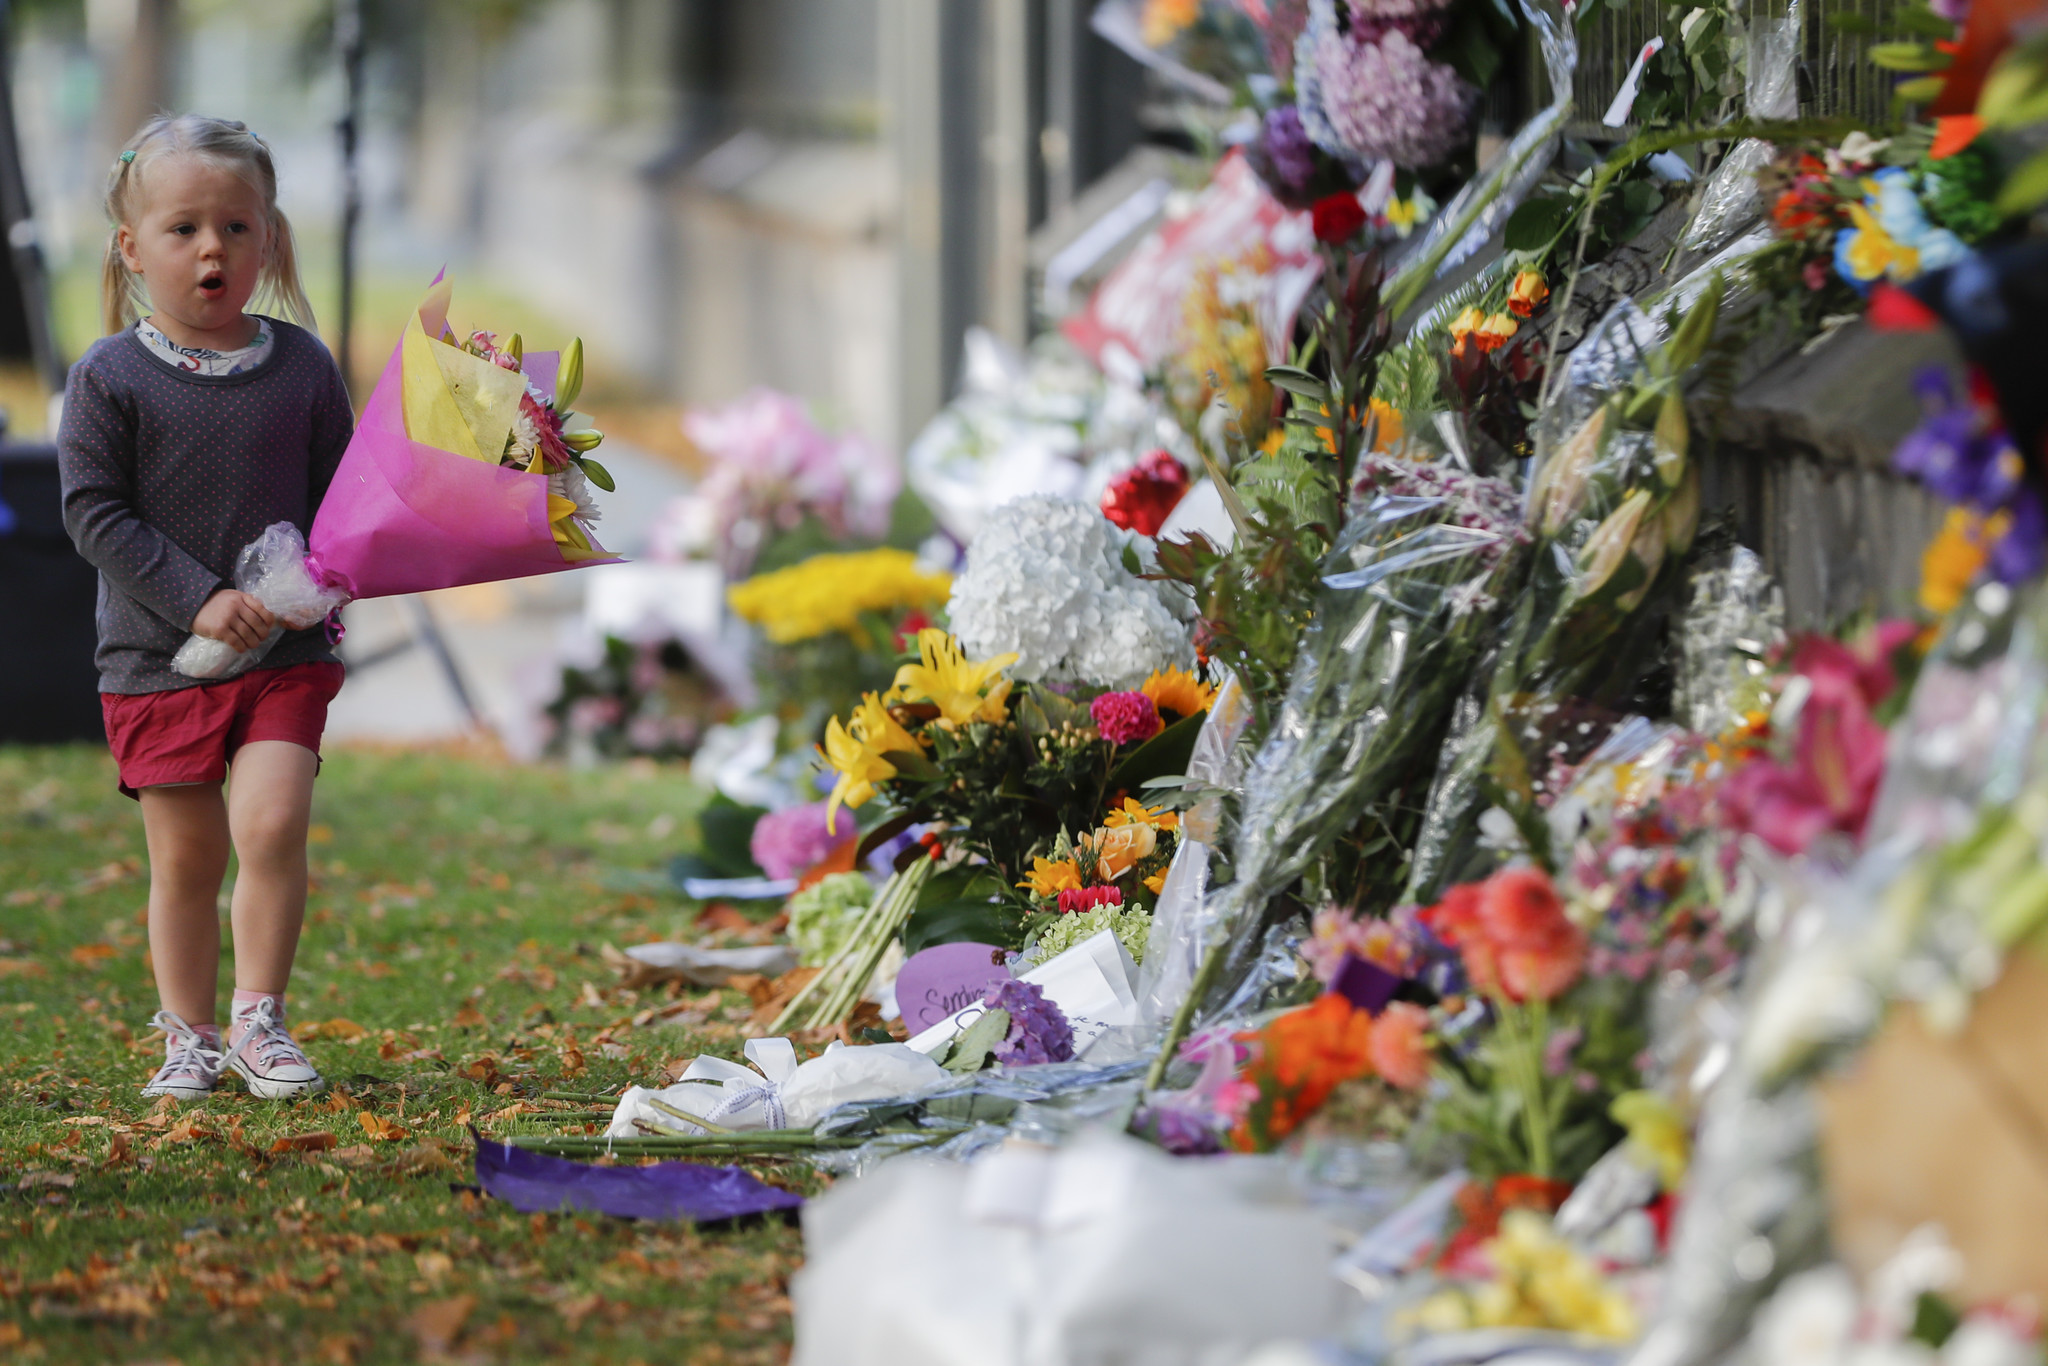 Here's how YouTube struggled to shut down flood of video of New Zealand shooting